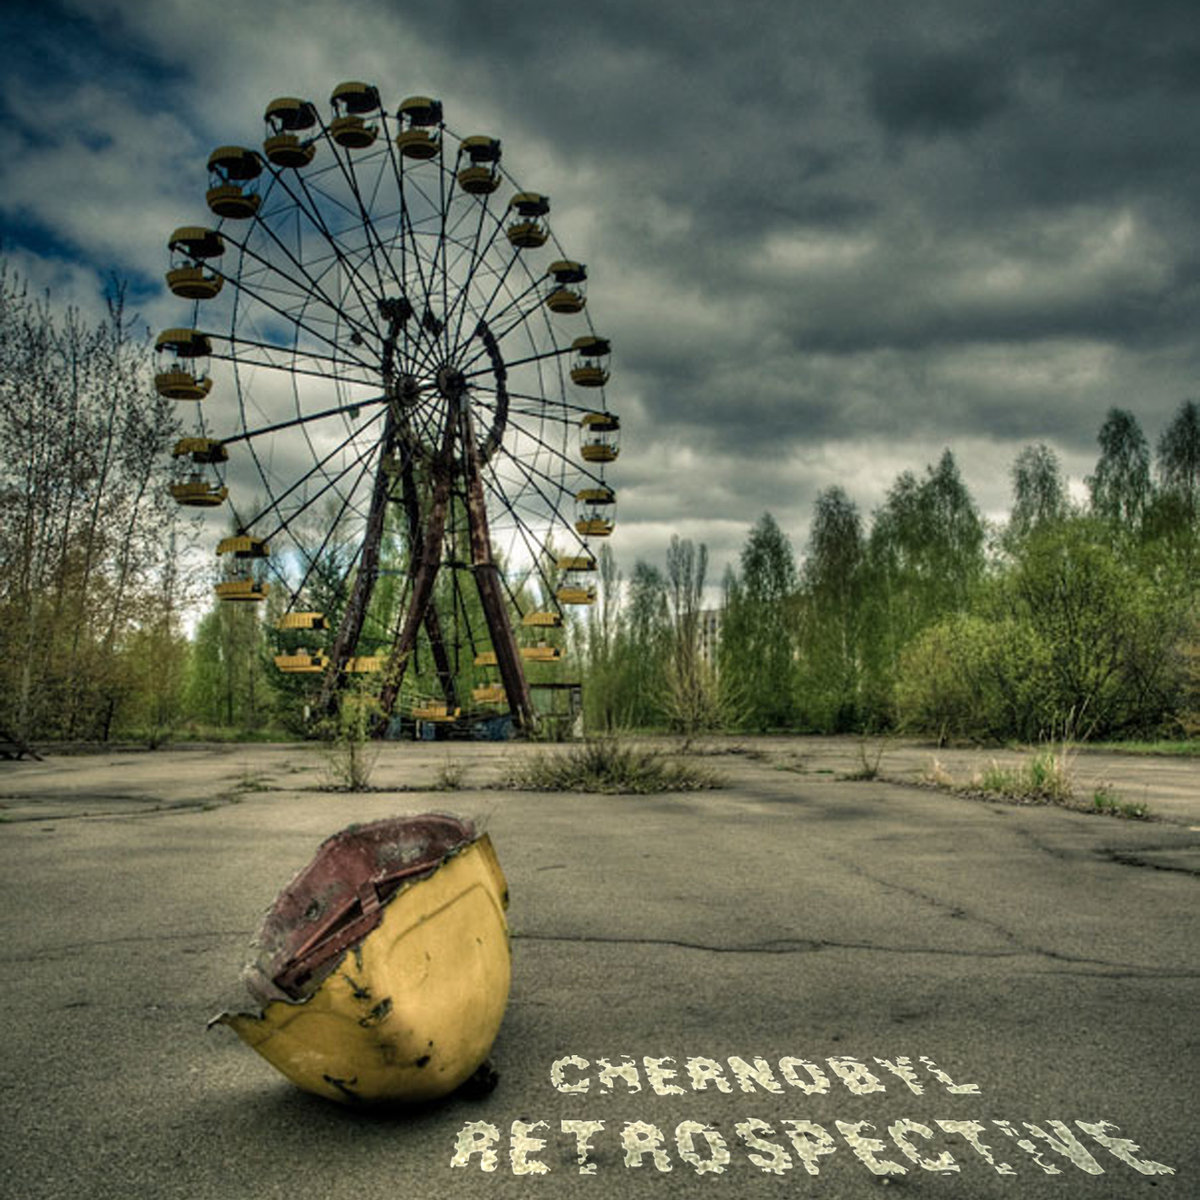 Skysonic Destiny - Radioactive Сlouds @ 'Various Artists - Chernobyl Retrospective' album (electronic, ambient)